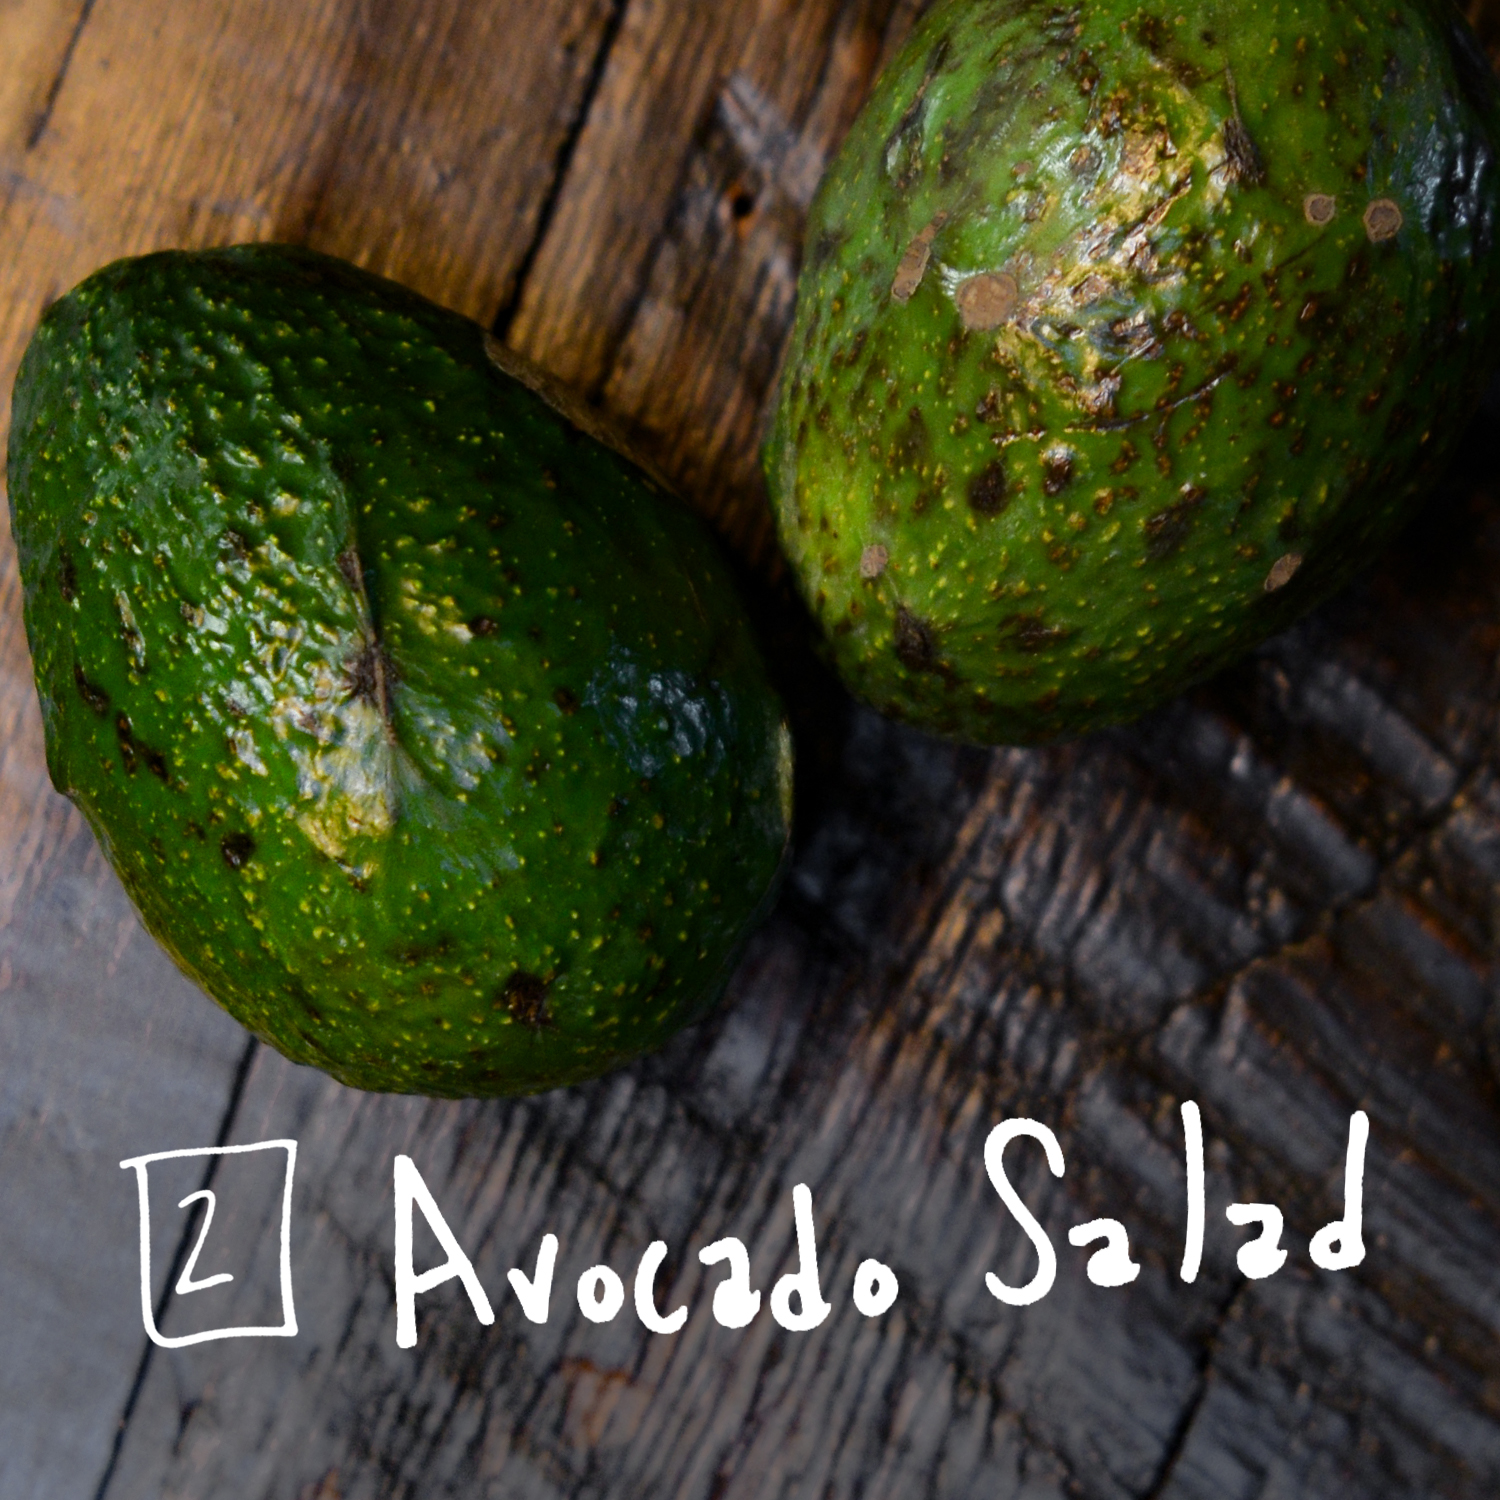 Eat this healthy salad on it's own or use it as a topping for quesadillas or filling for tacos. - Find the recipe at: Epicurious